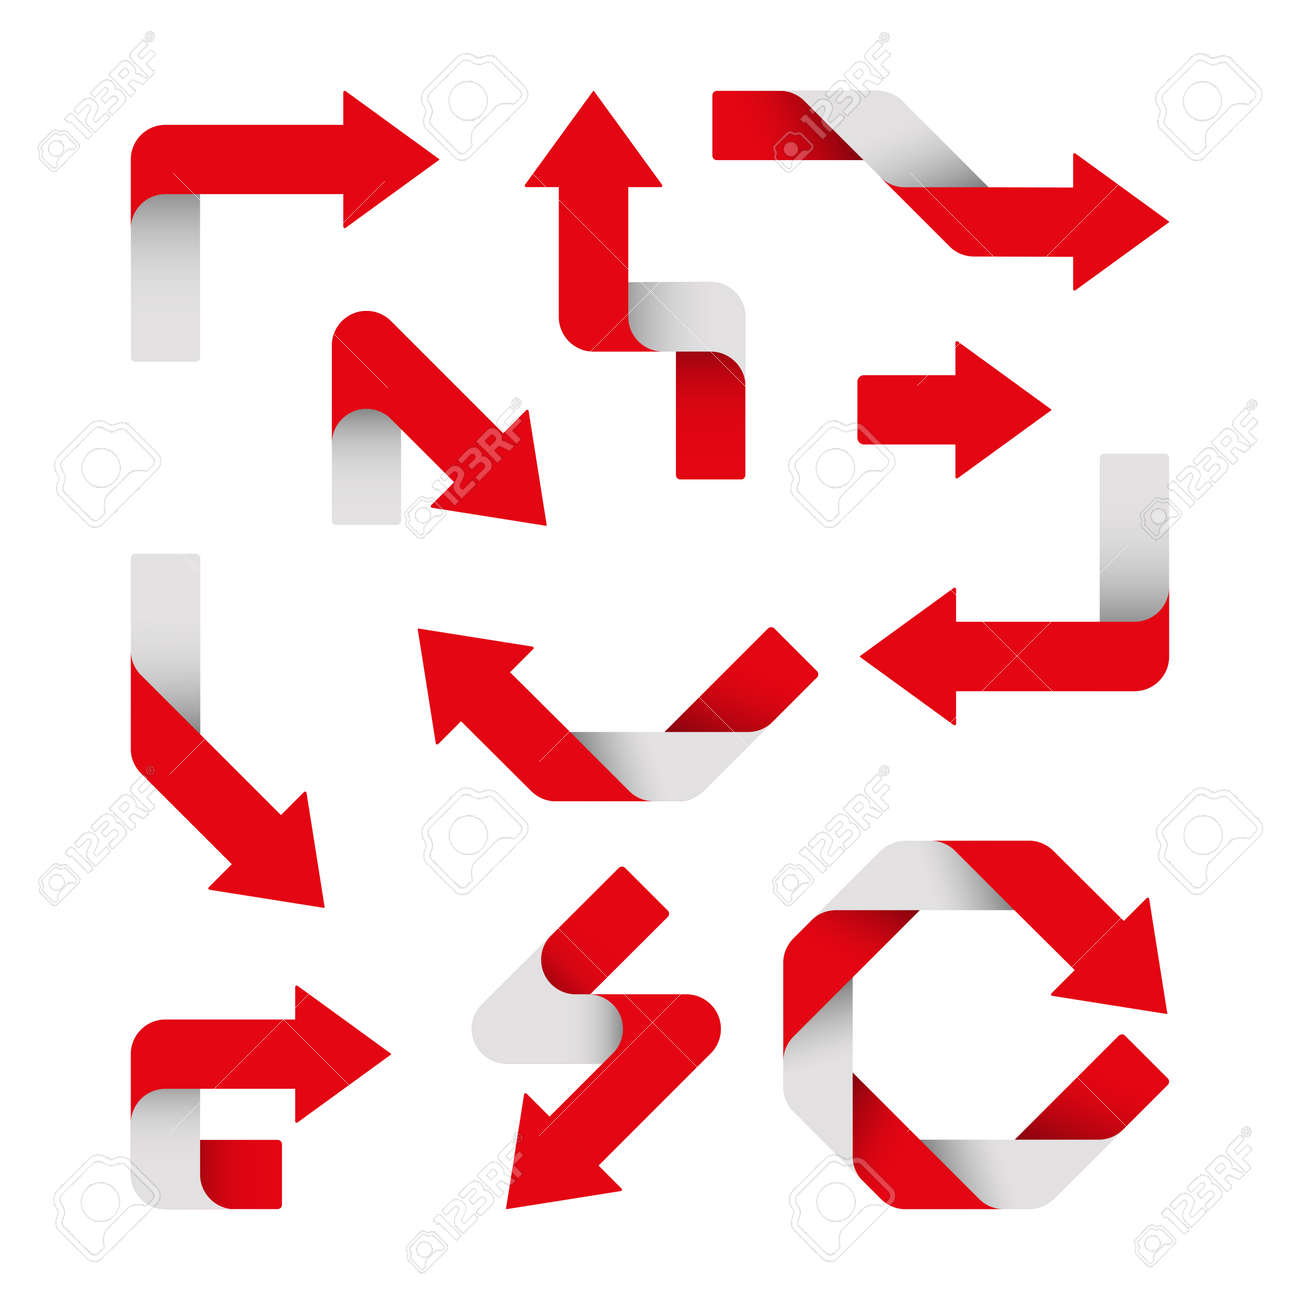 Vector Illustration. Set of red arrows are isolated. - 169208625